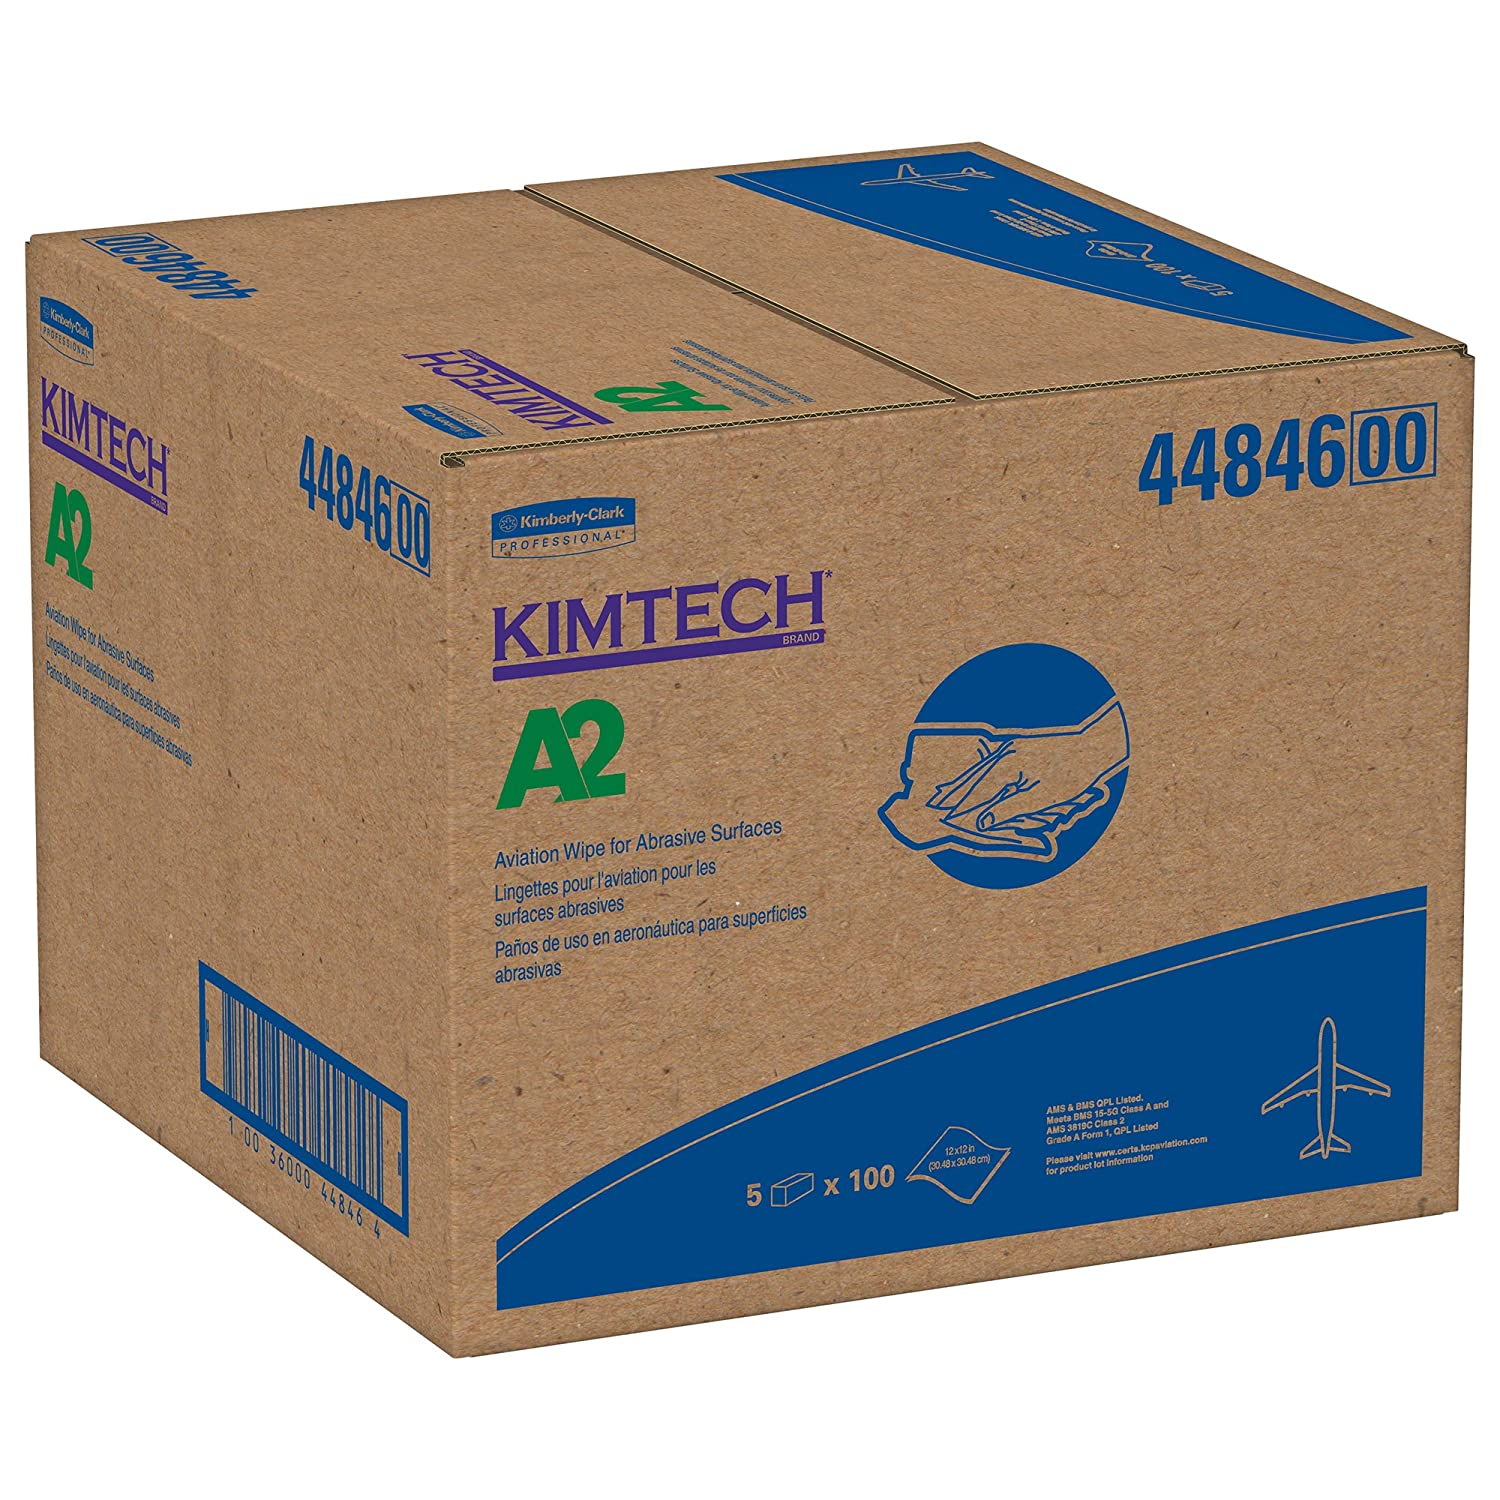 "Kimtech A2 Aviation Wipes 44846 Aerospace Abrasive Surface Cloths Solvent Wipers Flat Box 12"" x 12"" White 100 Sheets Pack 5 Packs 500 Sheets Case"